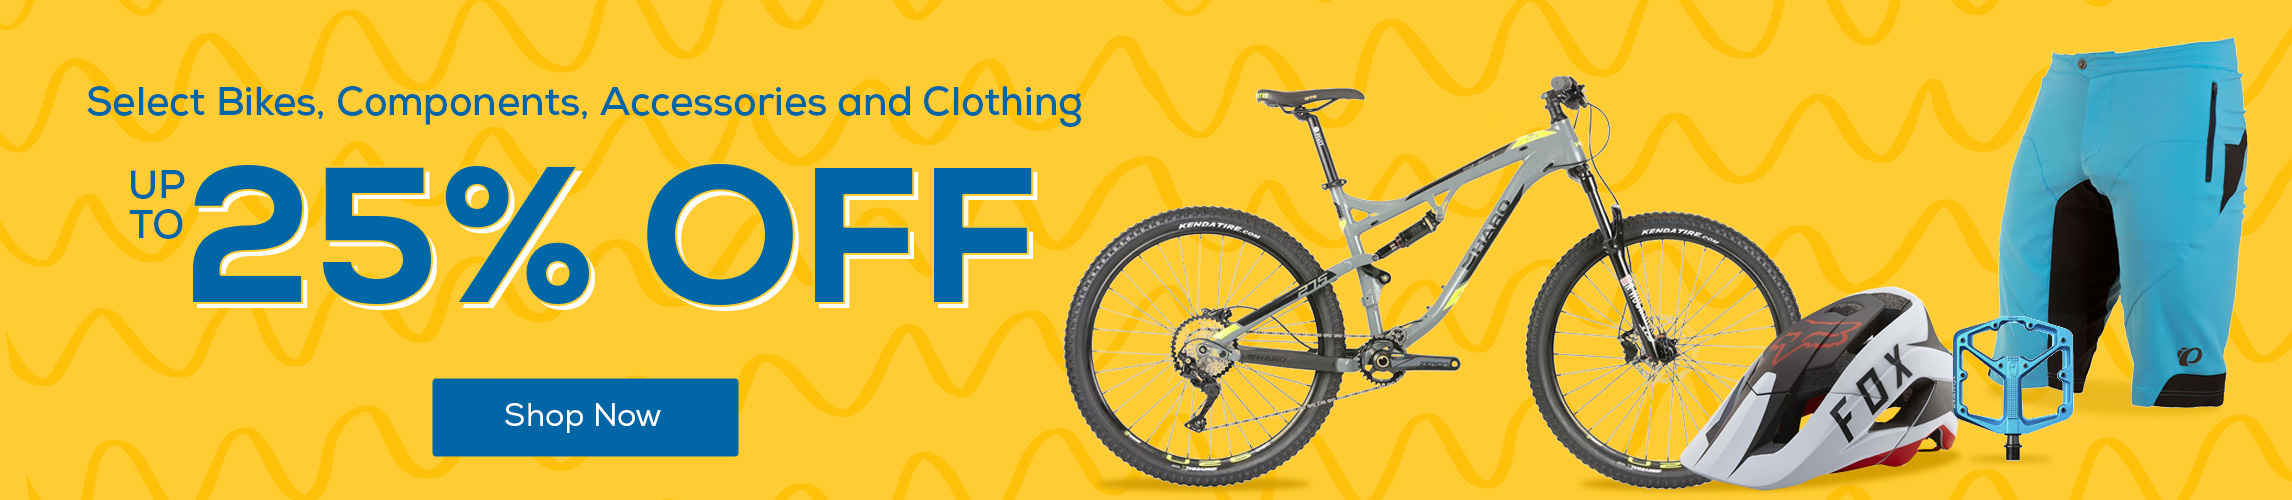 Get your bike rolling this Spring and save up to 25% off Select Bikes, Components, Accessories and Clothing.